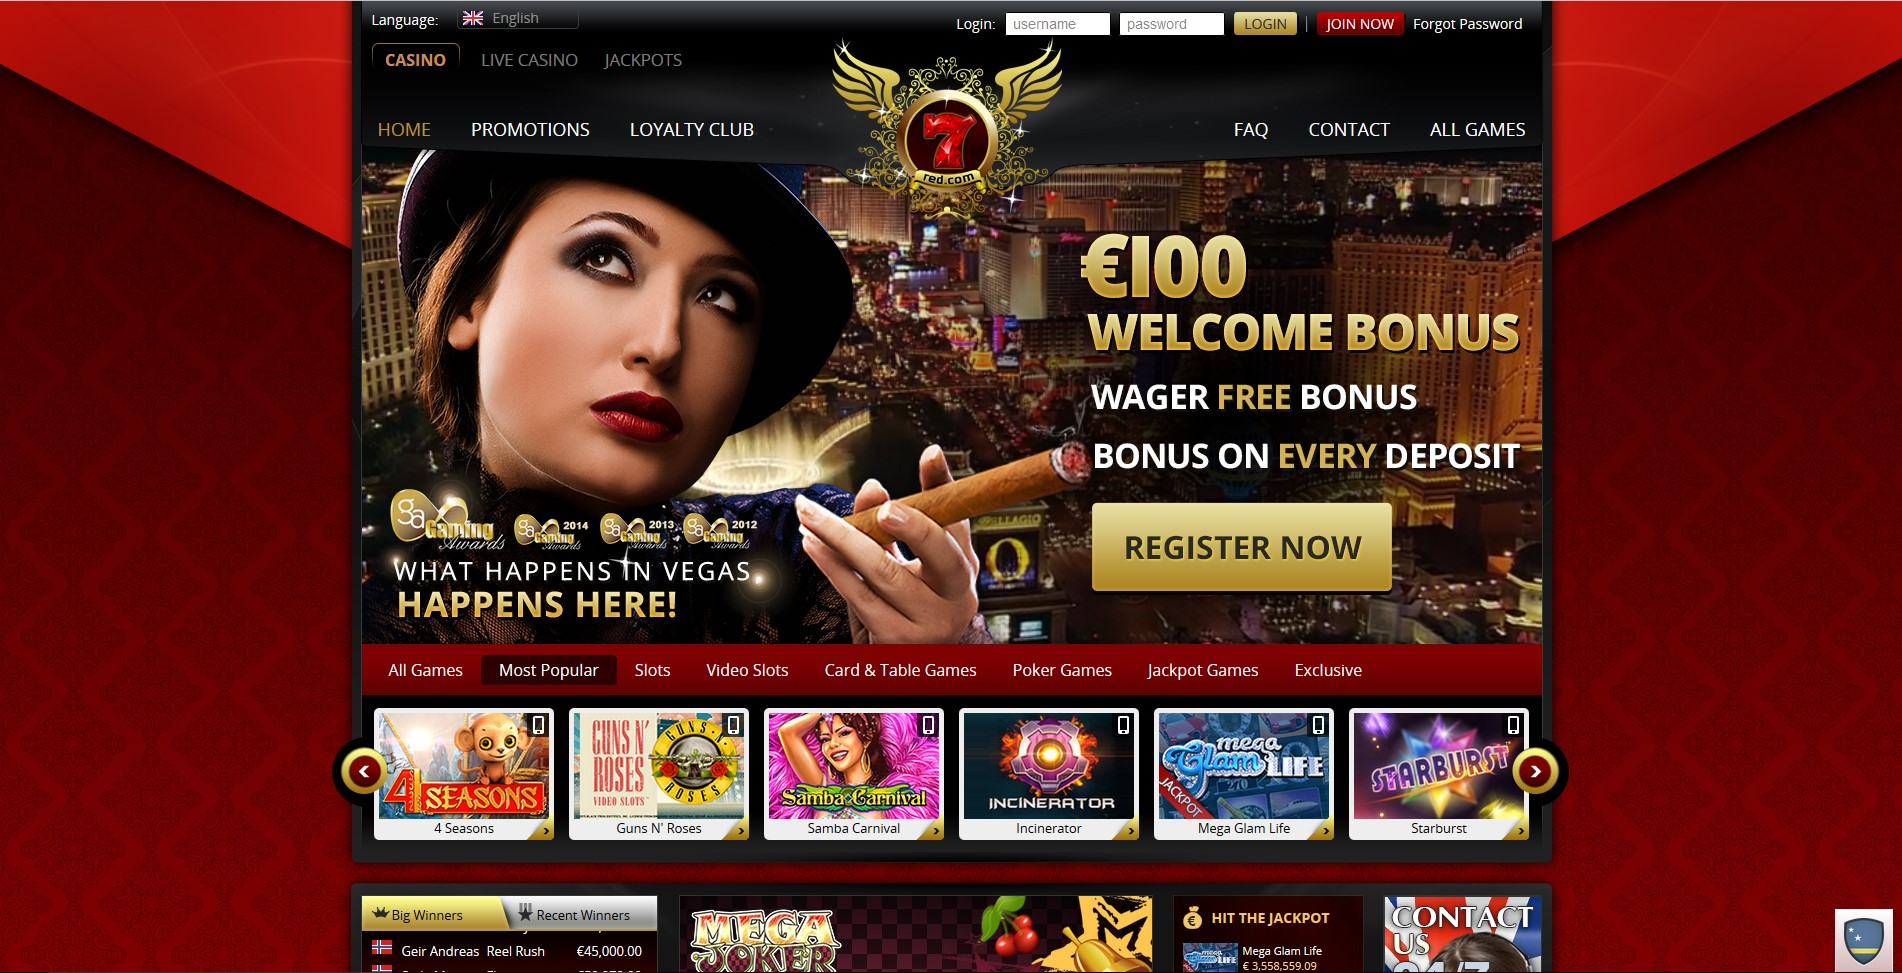 138 Casino Review – Expert Ratings and User Reviews